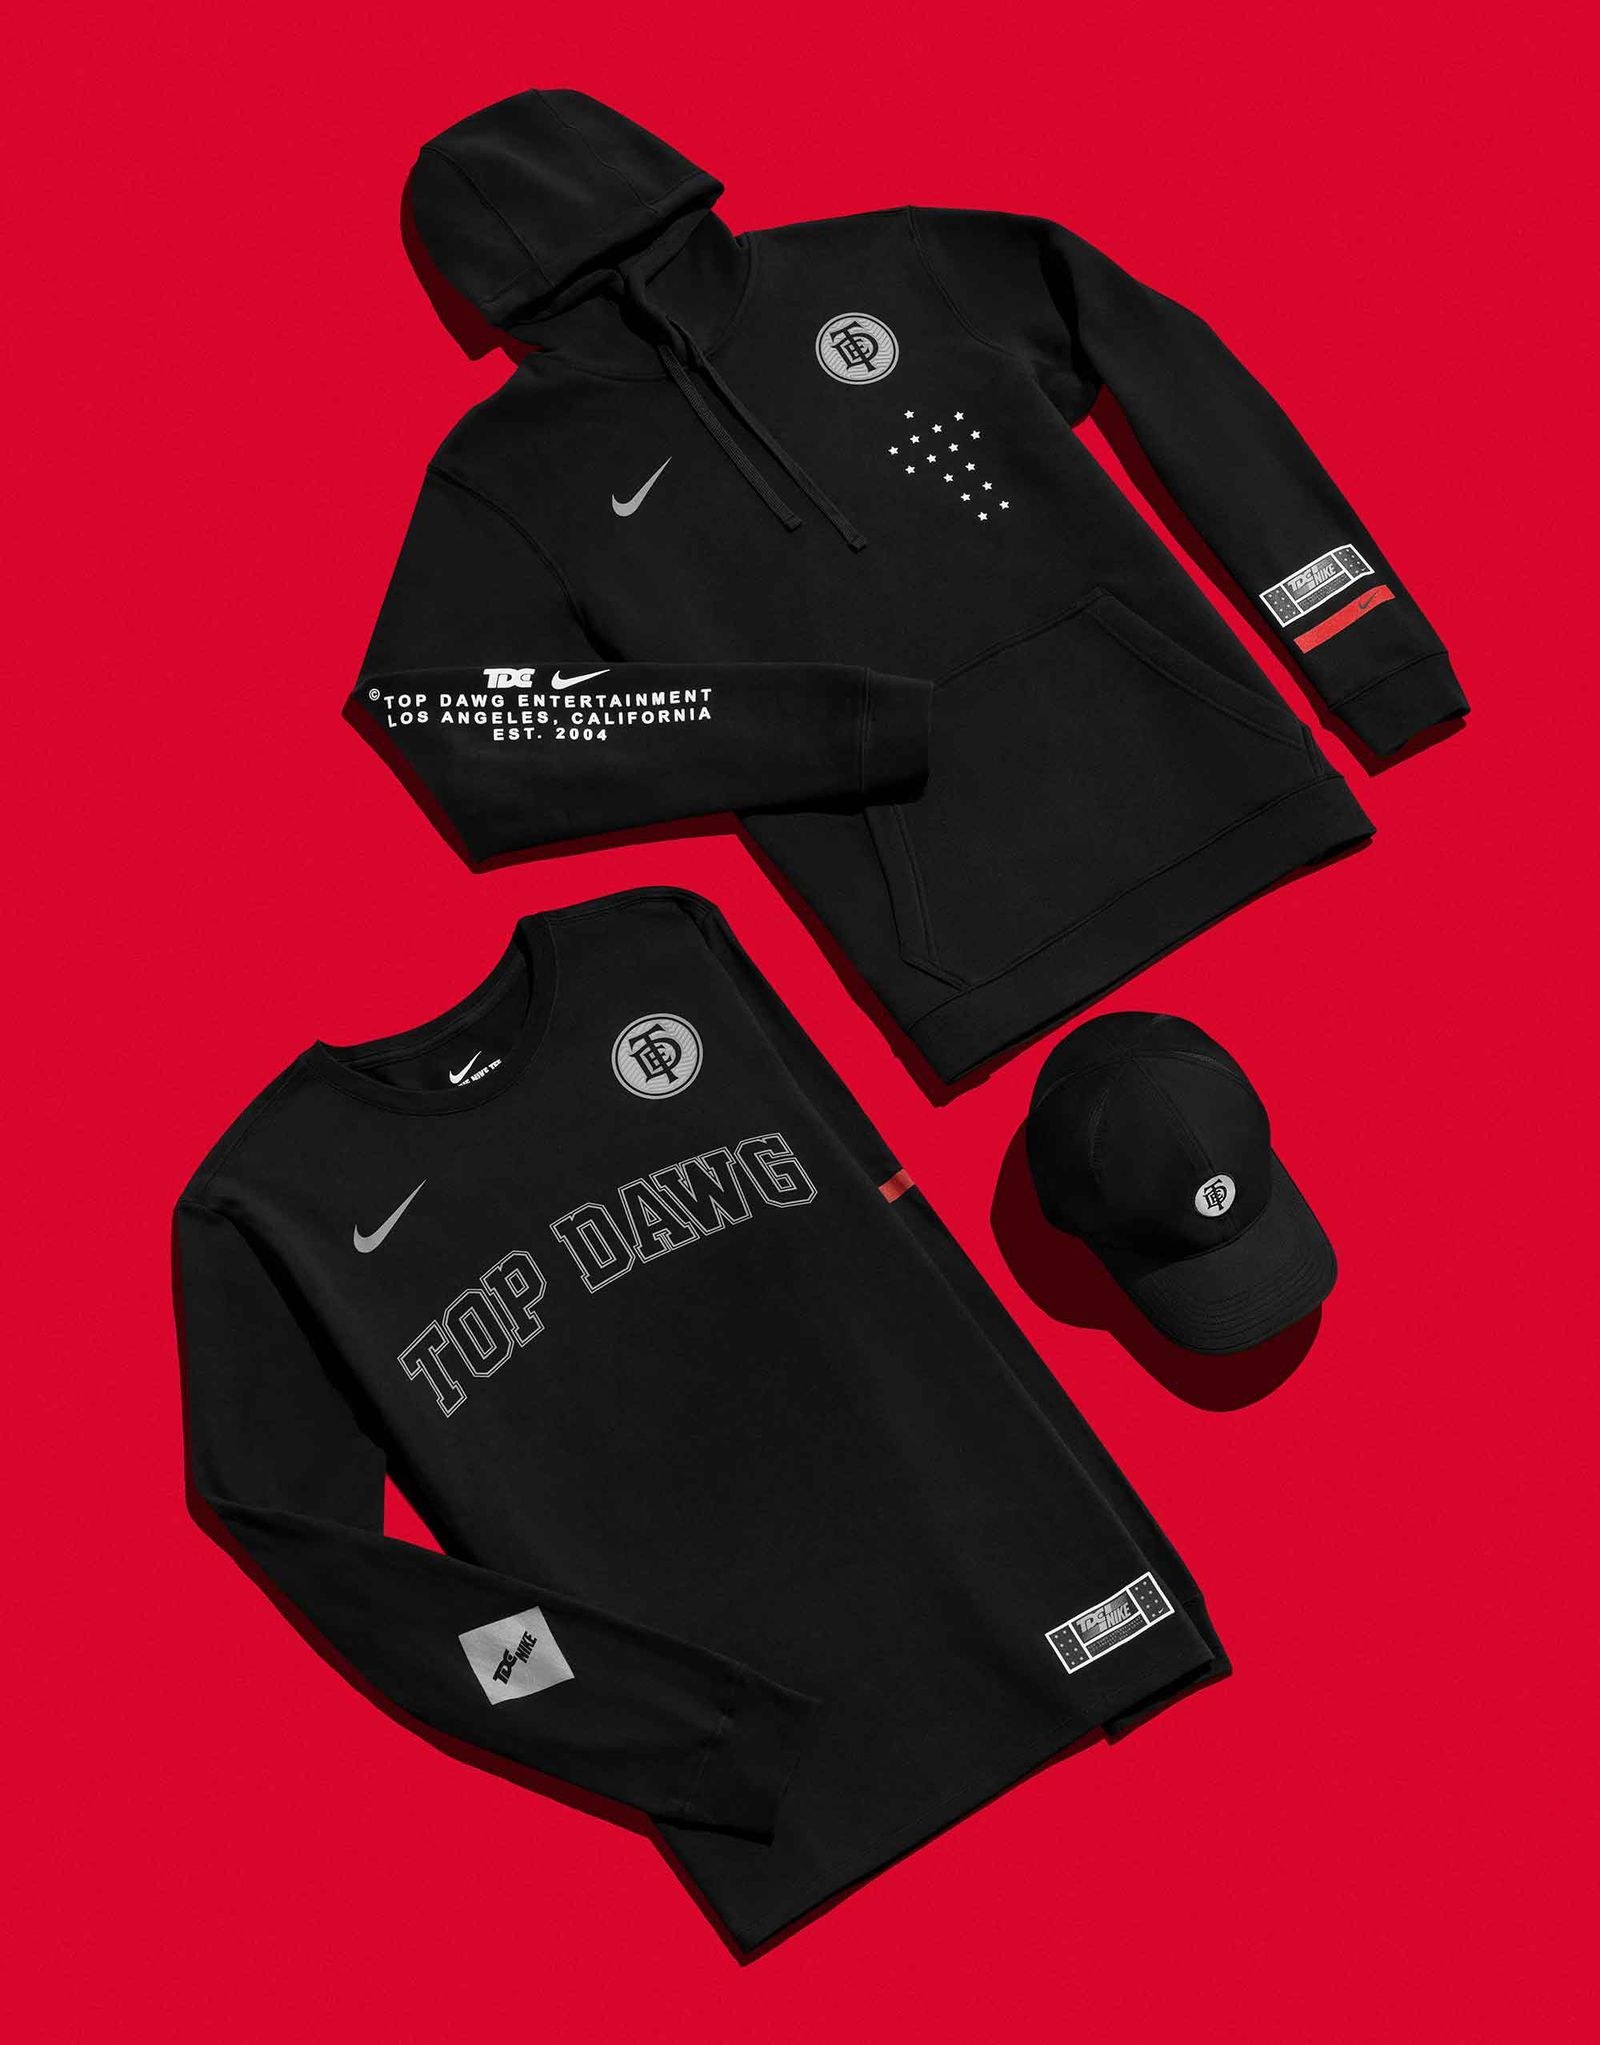 eficiencia licencia proteger  Nike x Kendrick and TDE Will Get You Excited About Concert Merch Again |  Tour merch, Gym outfit, Merch